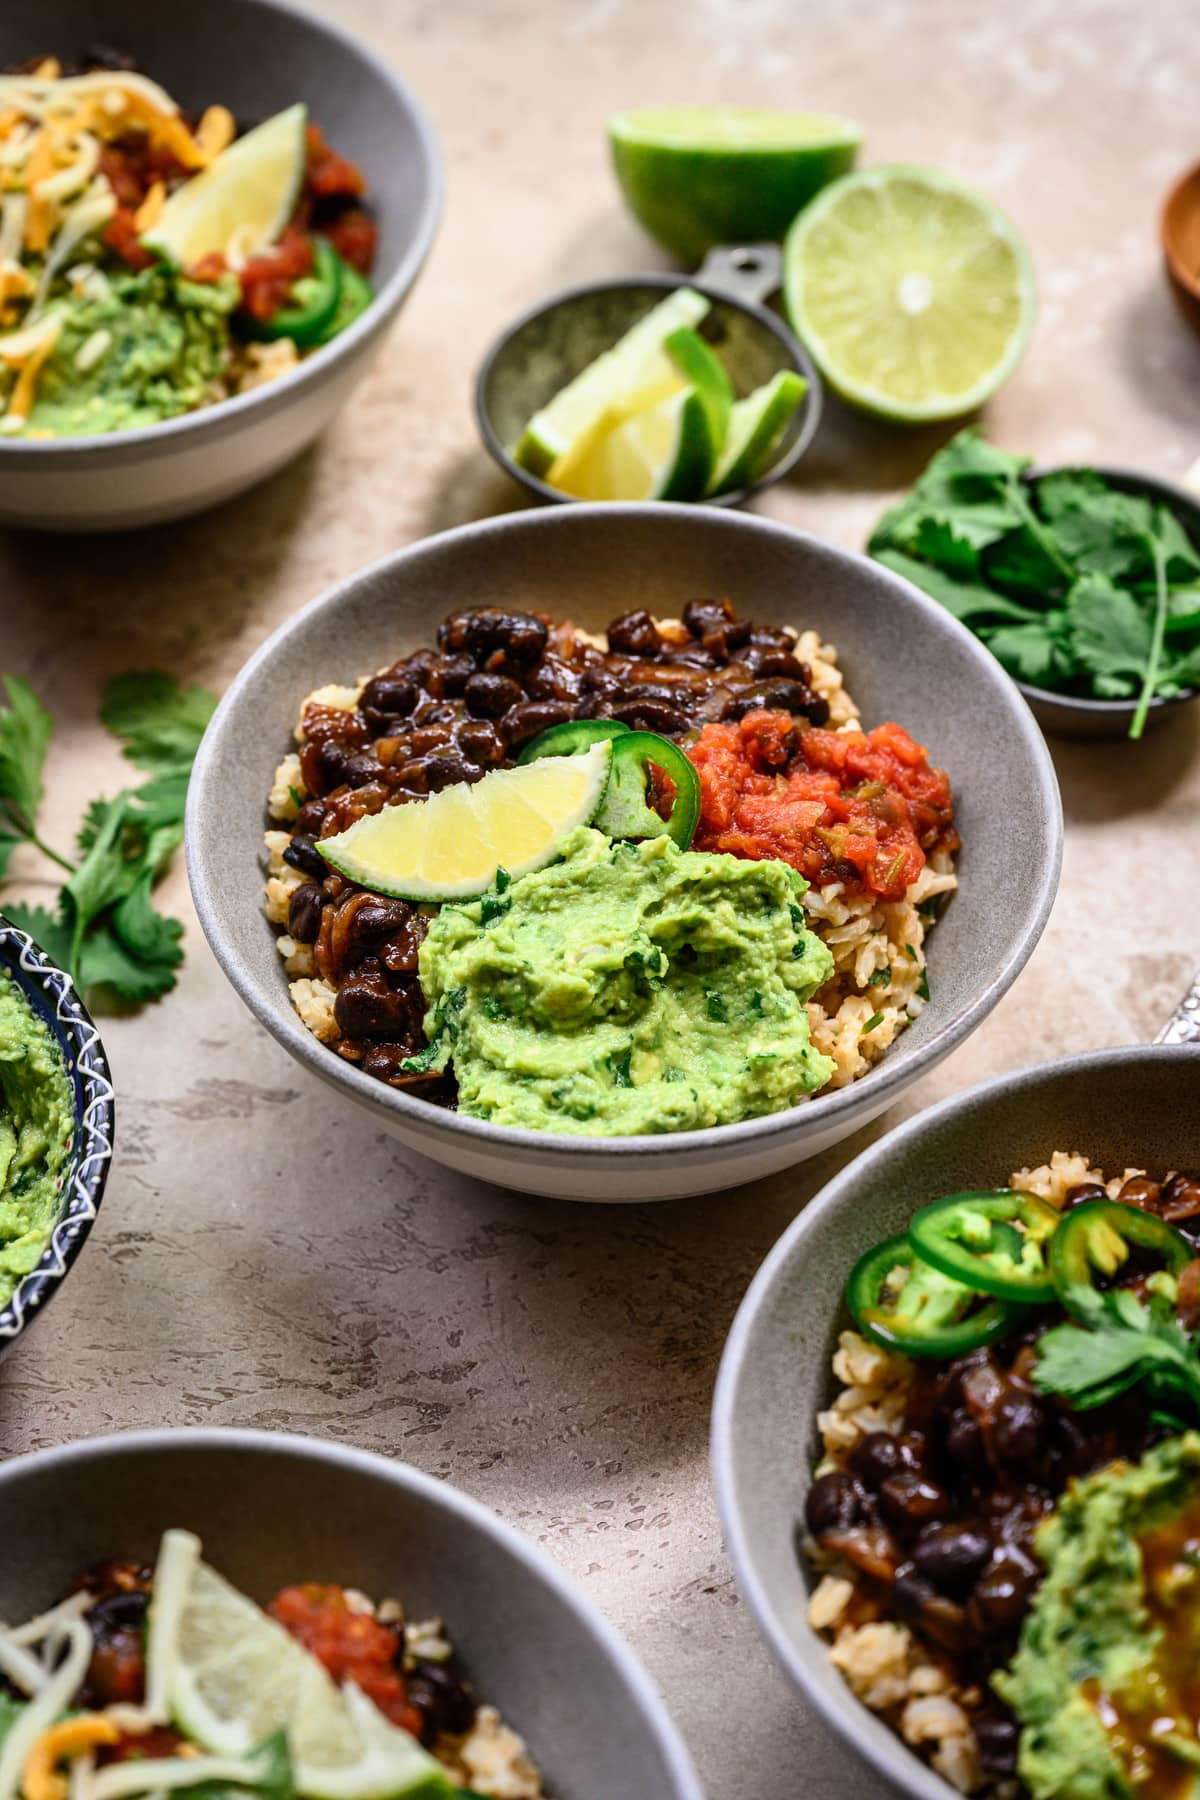 Side view of vegan burrito bowls with spicy black beans and guacamole